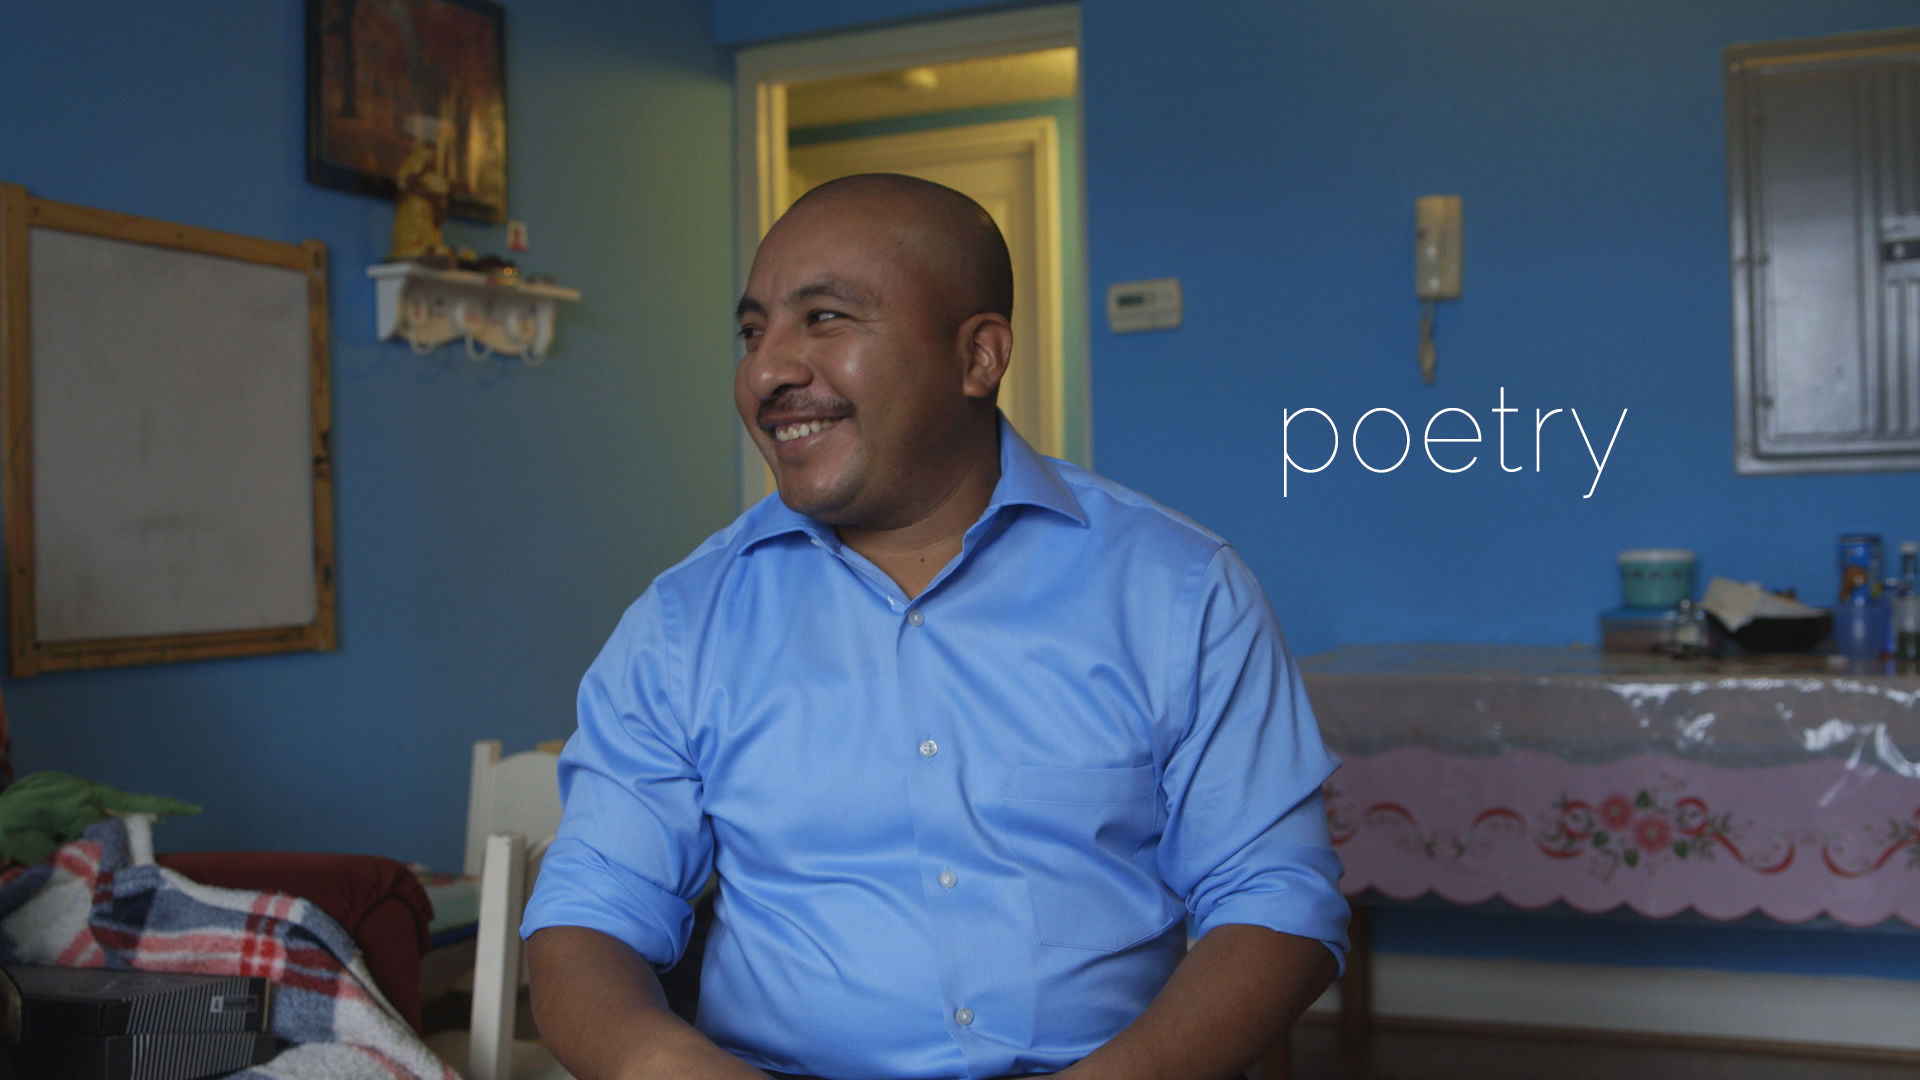 Fleeing extreme poverty in Guatemala, Obispo migrated illegally to the US without speaking English or Spanish. He only spoke Mam, a Mayan language. After learning how to read and write in Spanish, he fell in love with poetry, which has become his way to regain a sense of freedom.